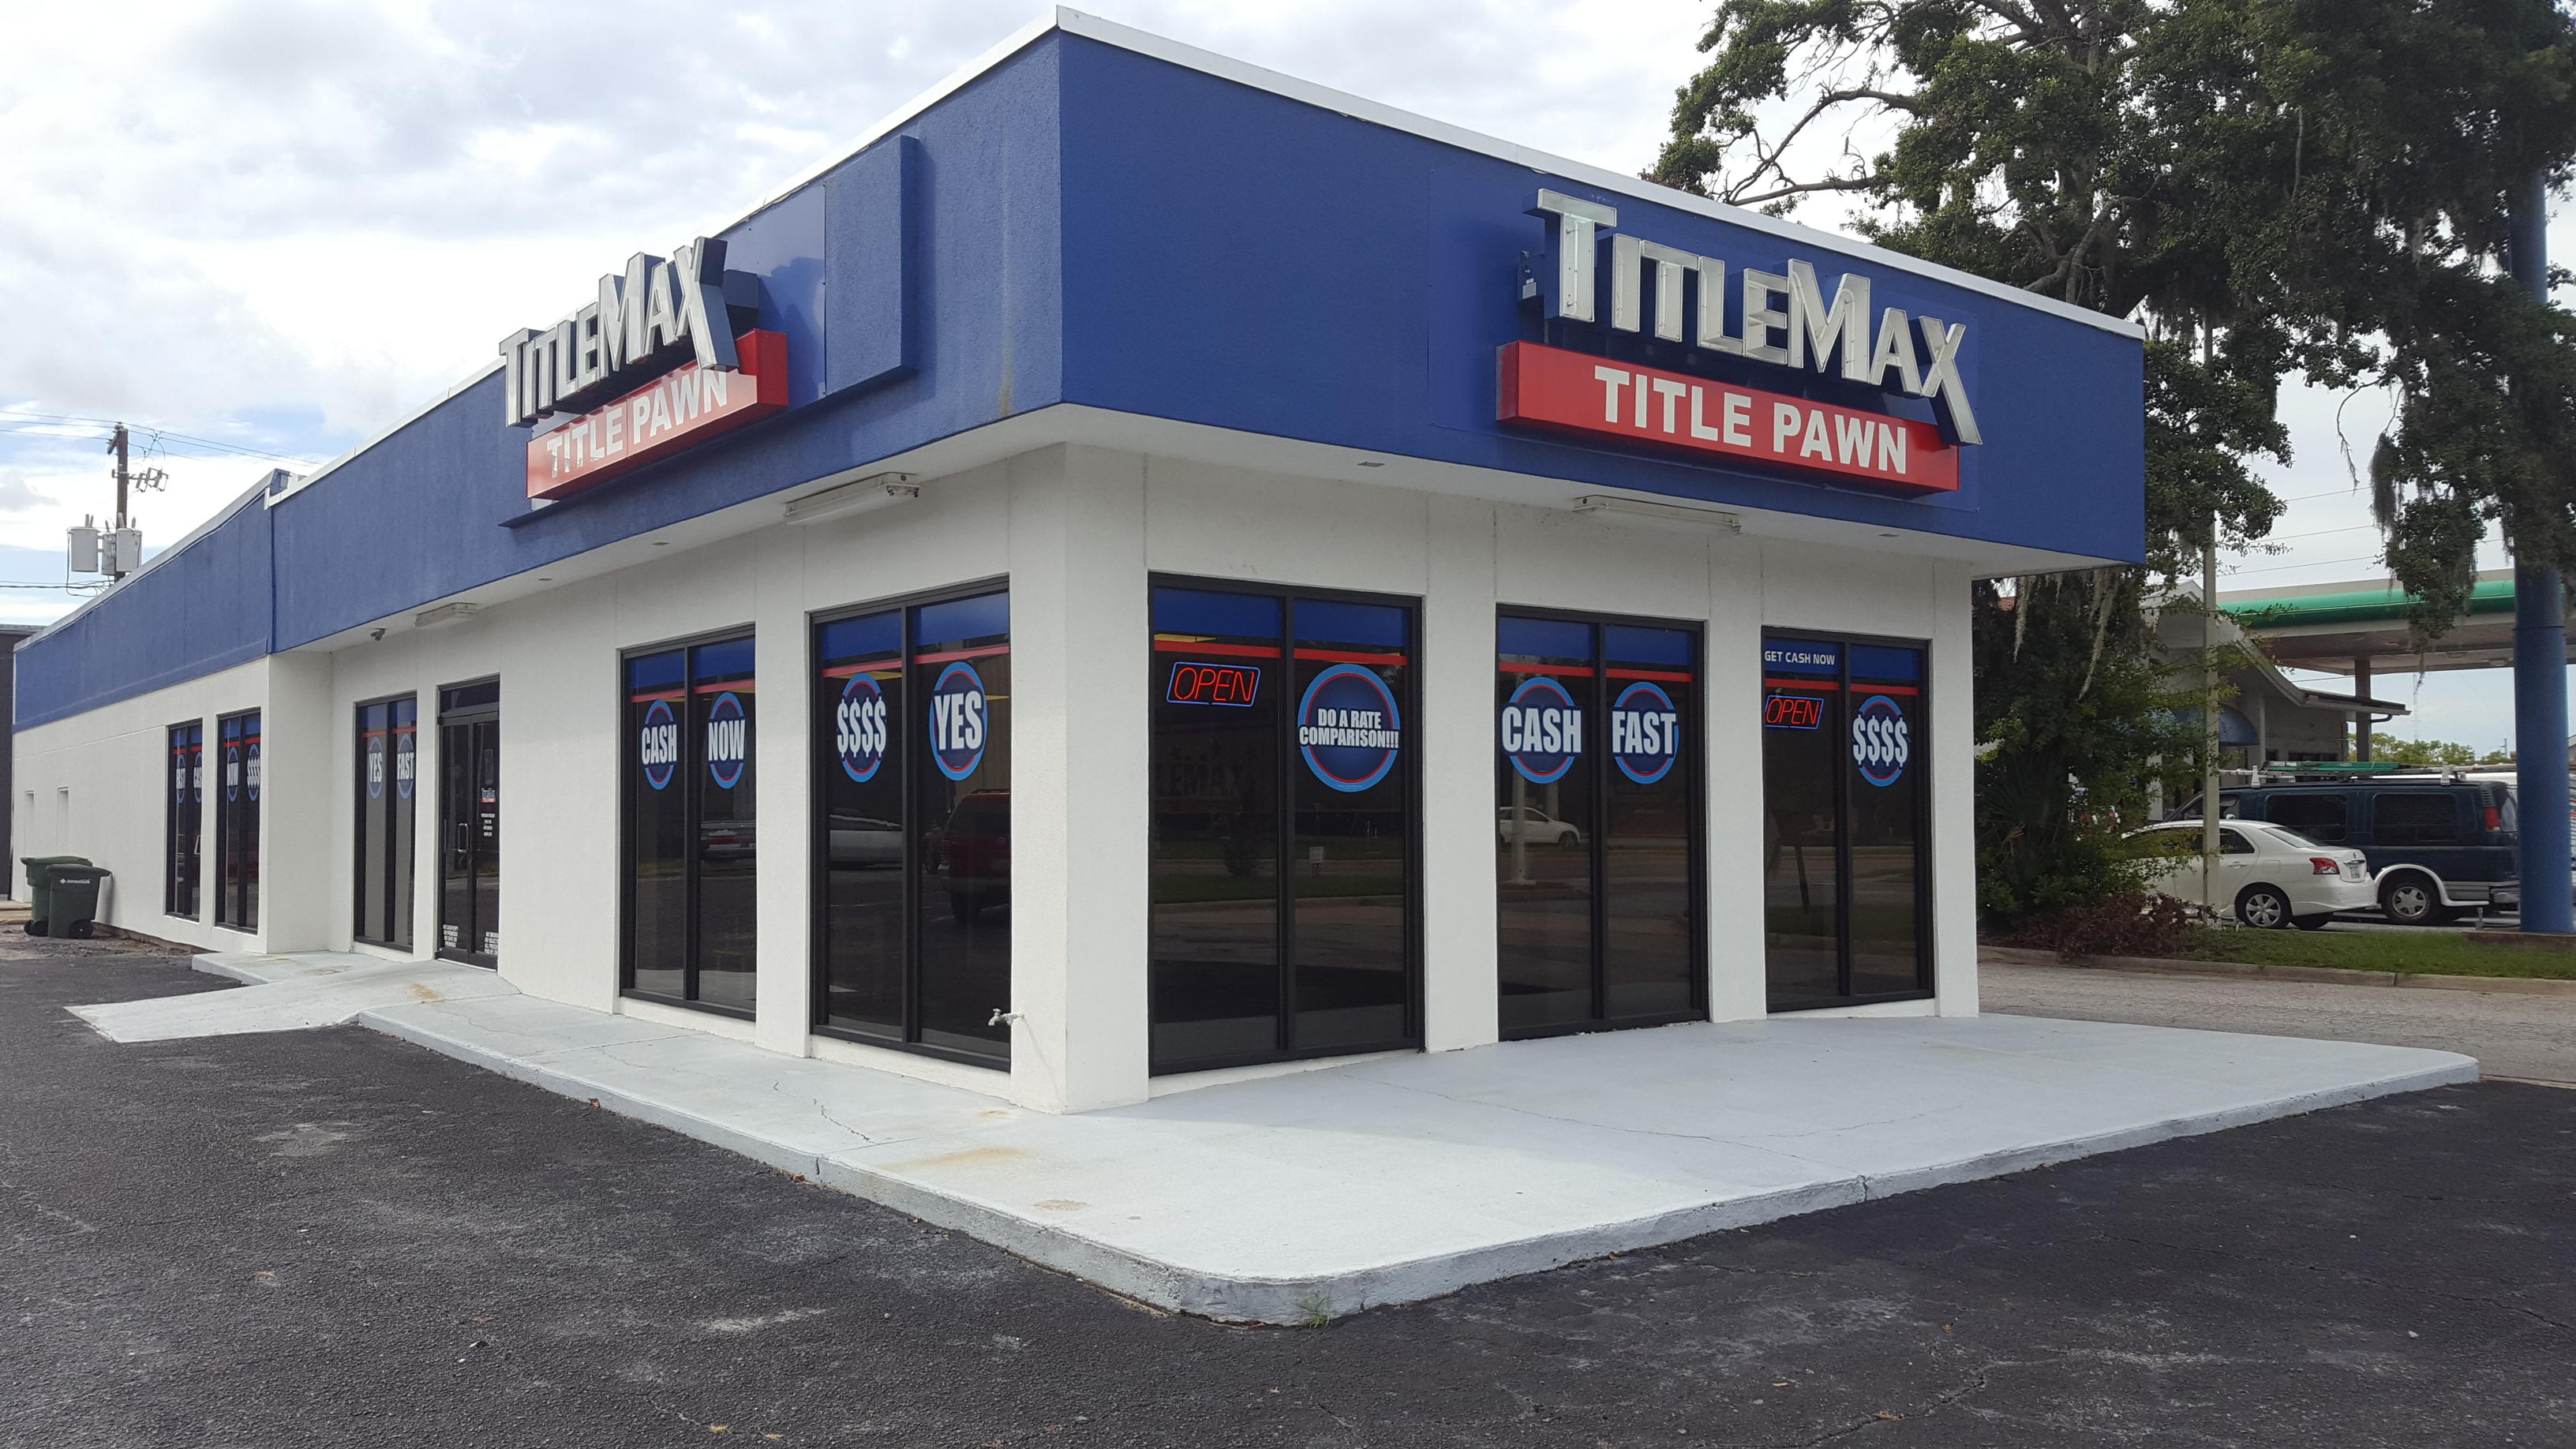 Titlemax title pawns at 10403 abercorn st savannah ga on for Southern motors savannah georgia